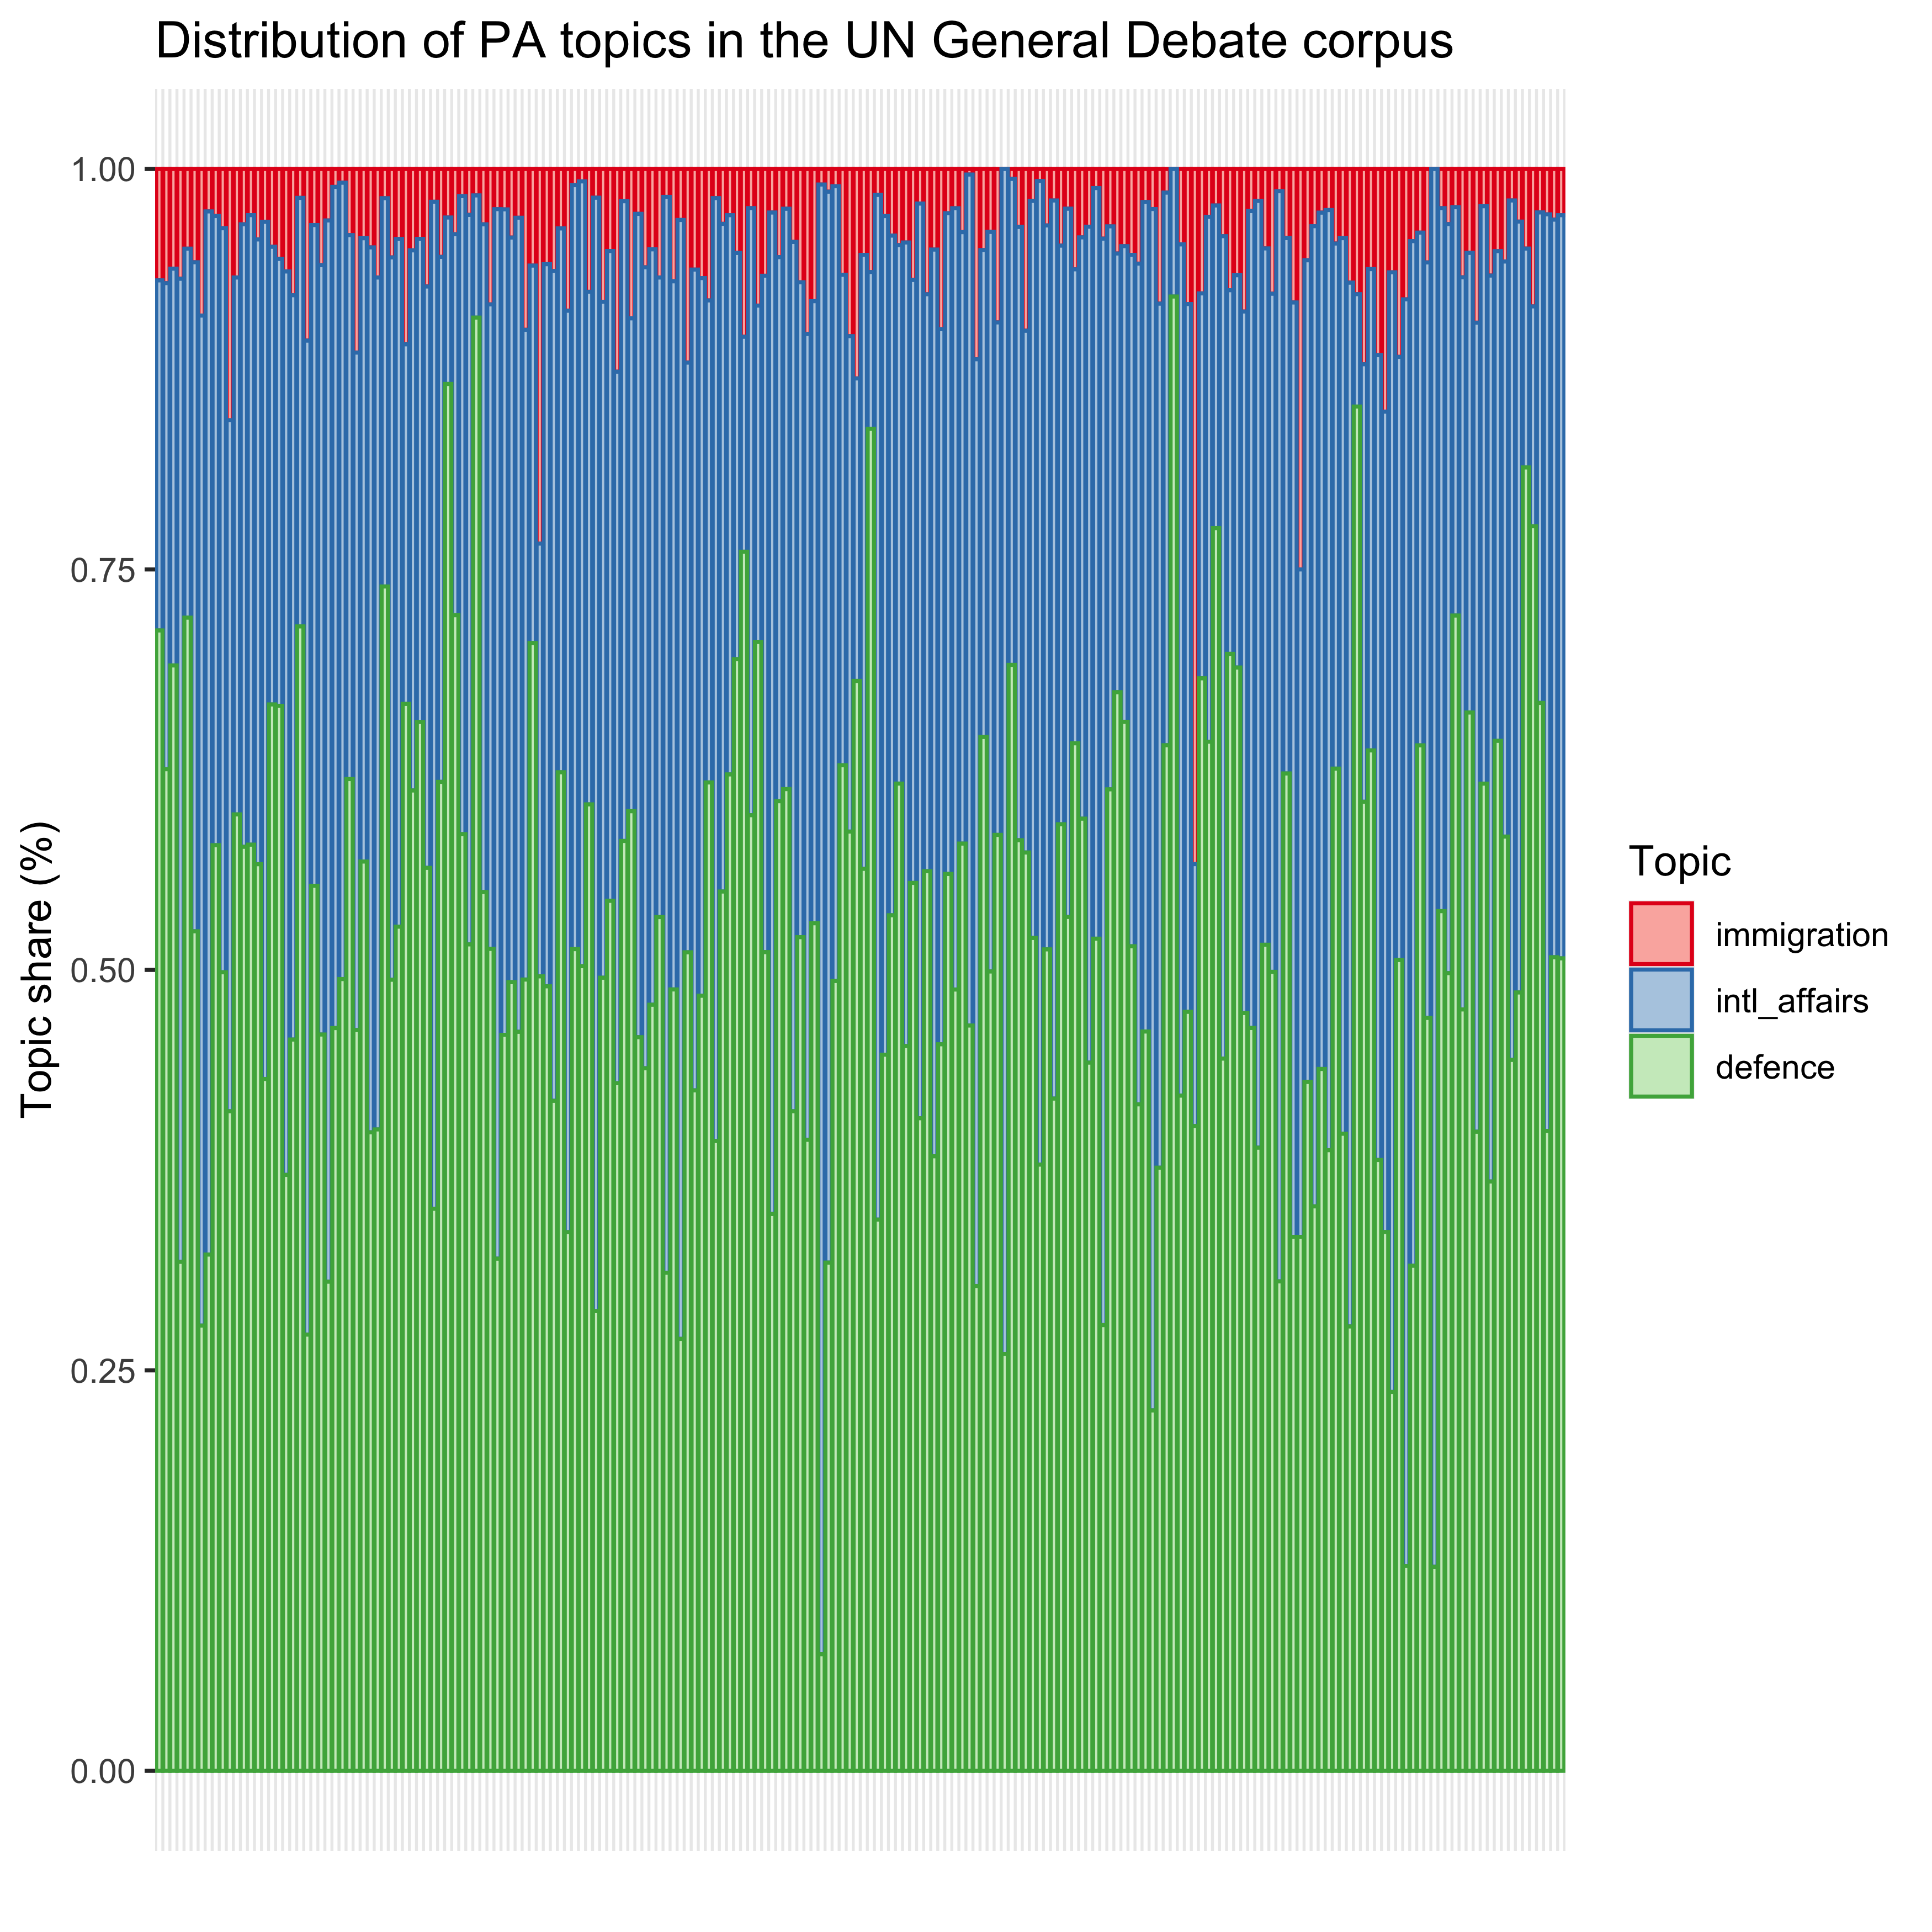 Distribution of PA topics in the UN General Debate corpus